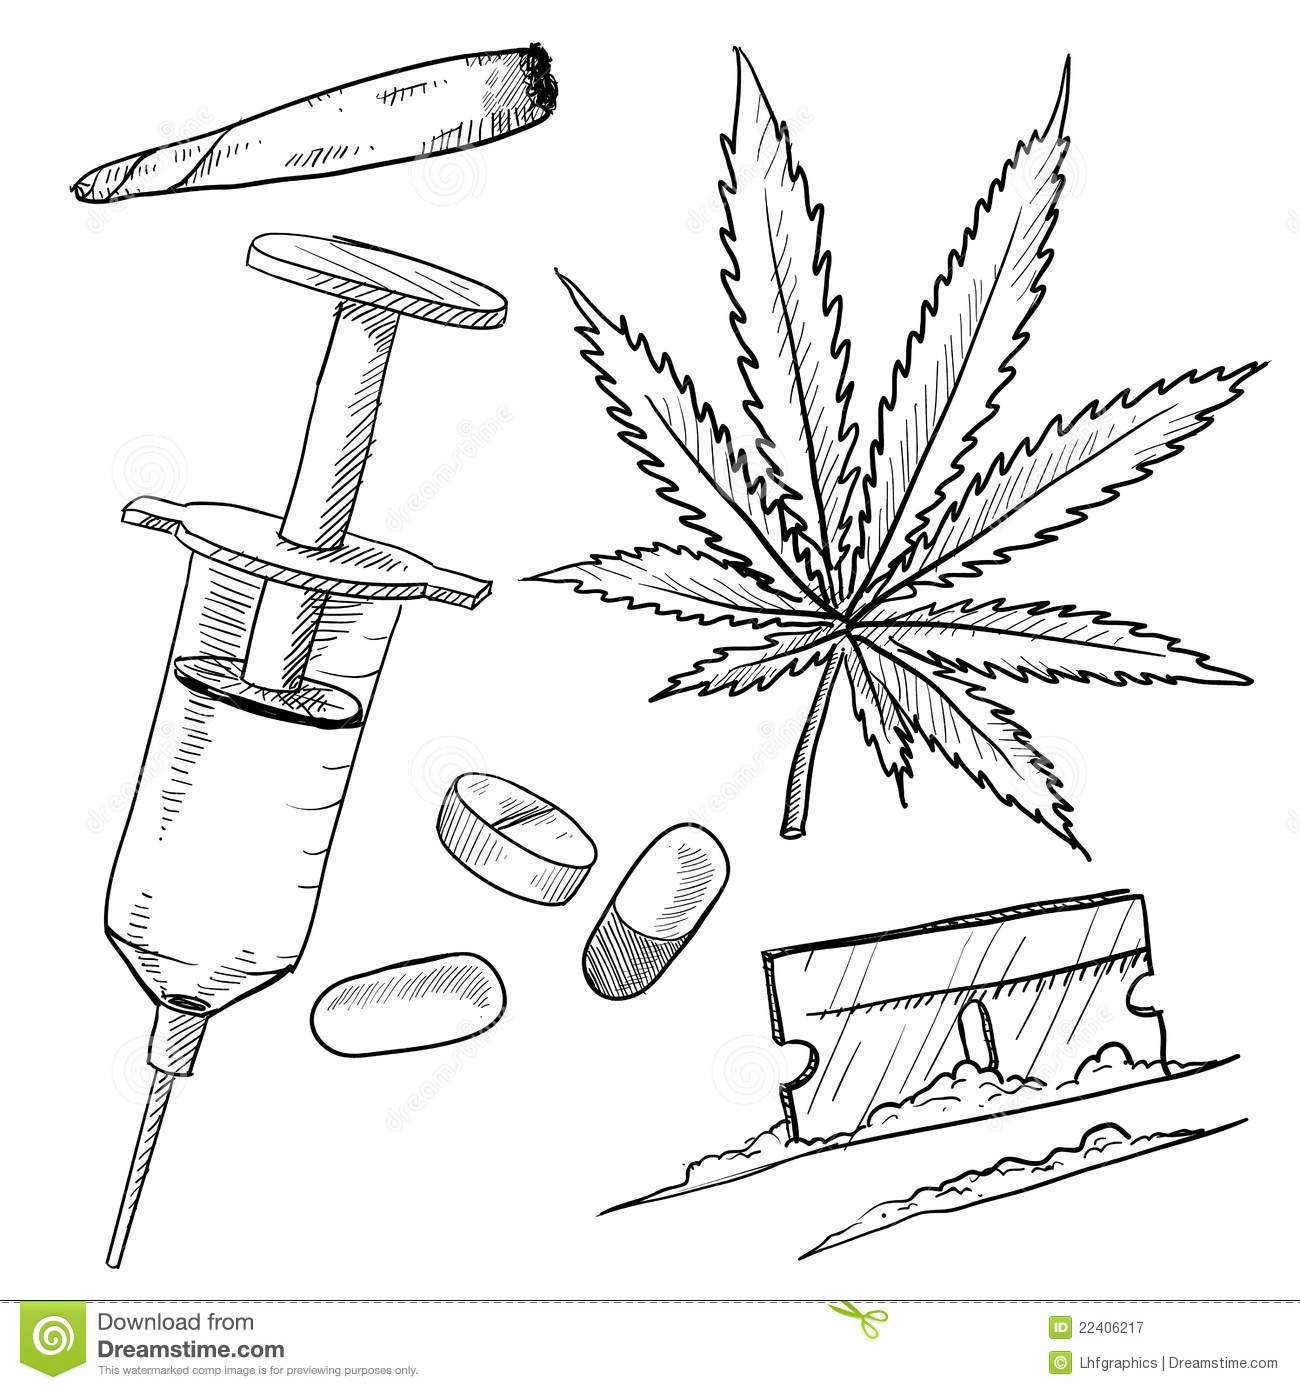 coloring pages of drugs - photo#27